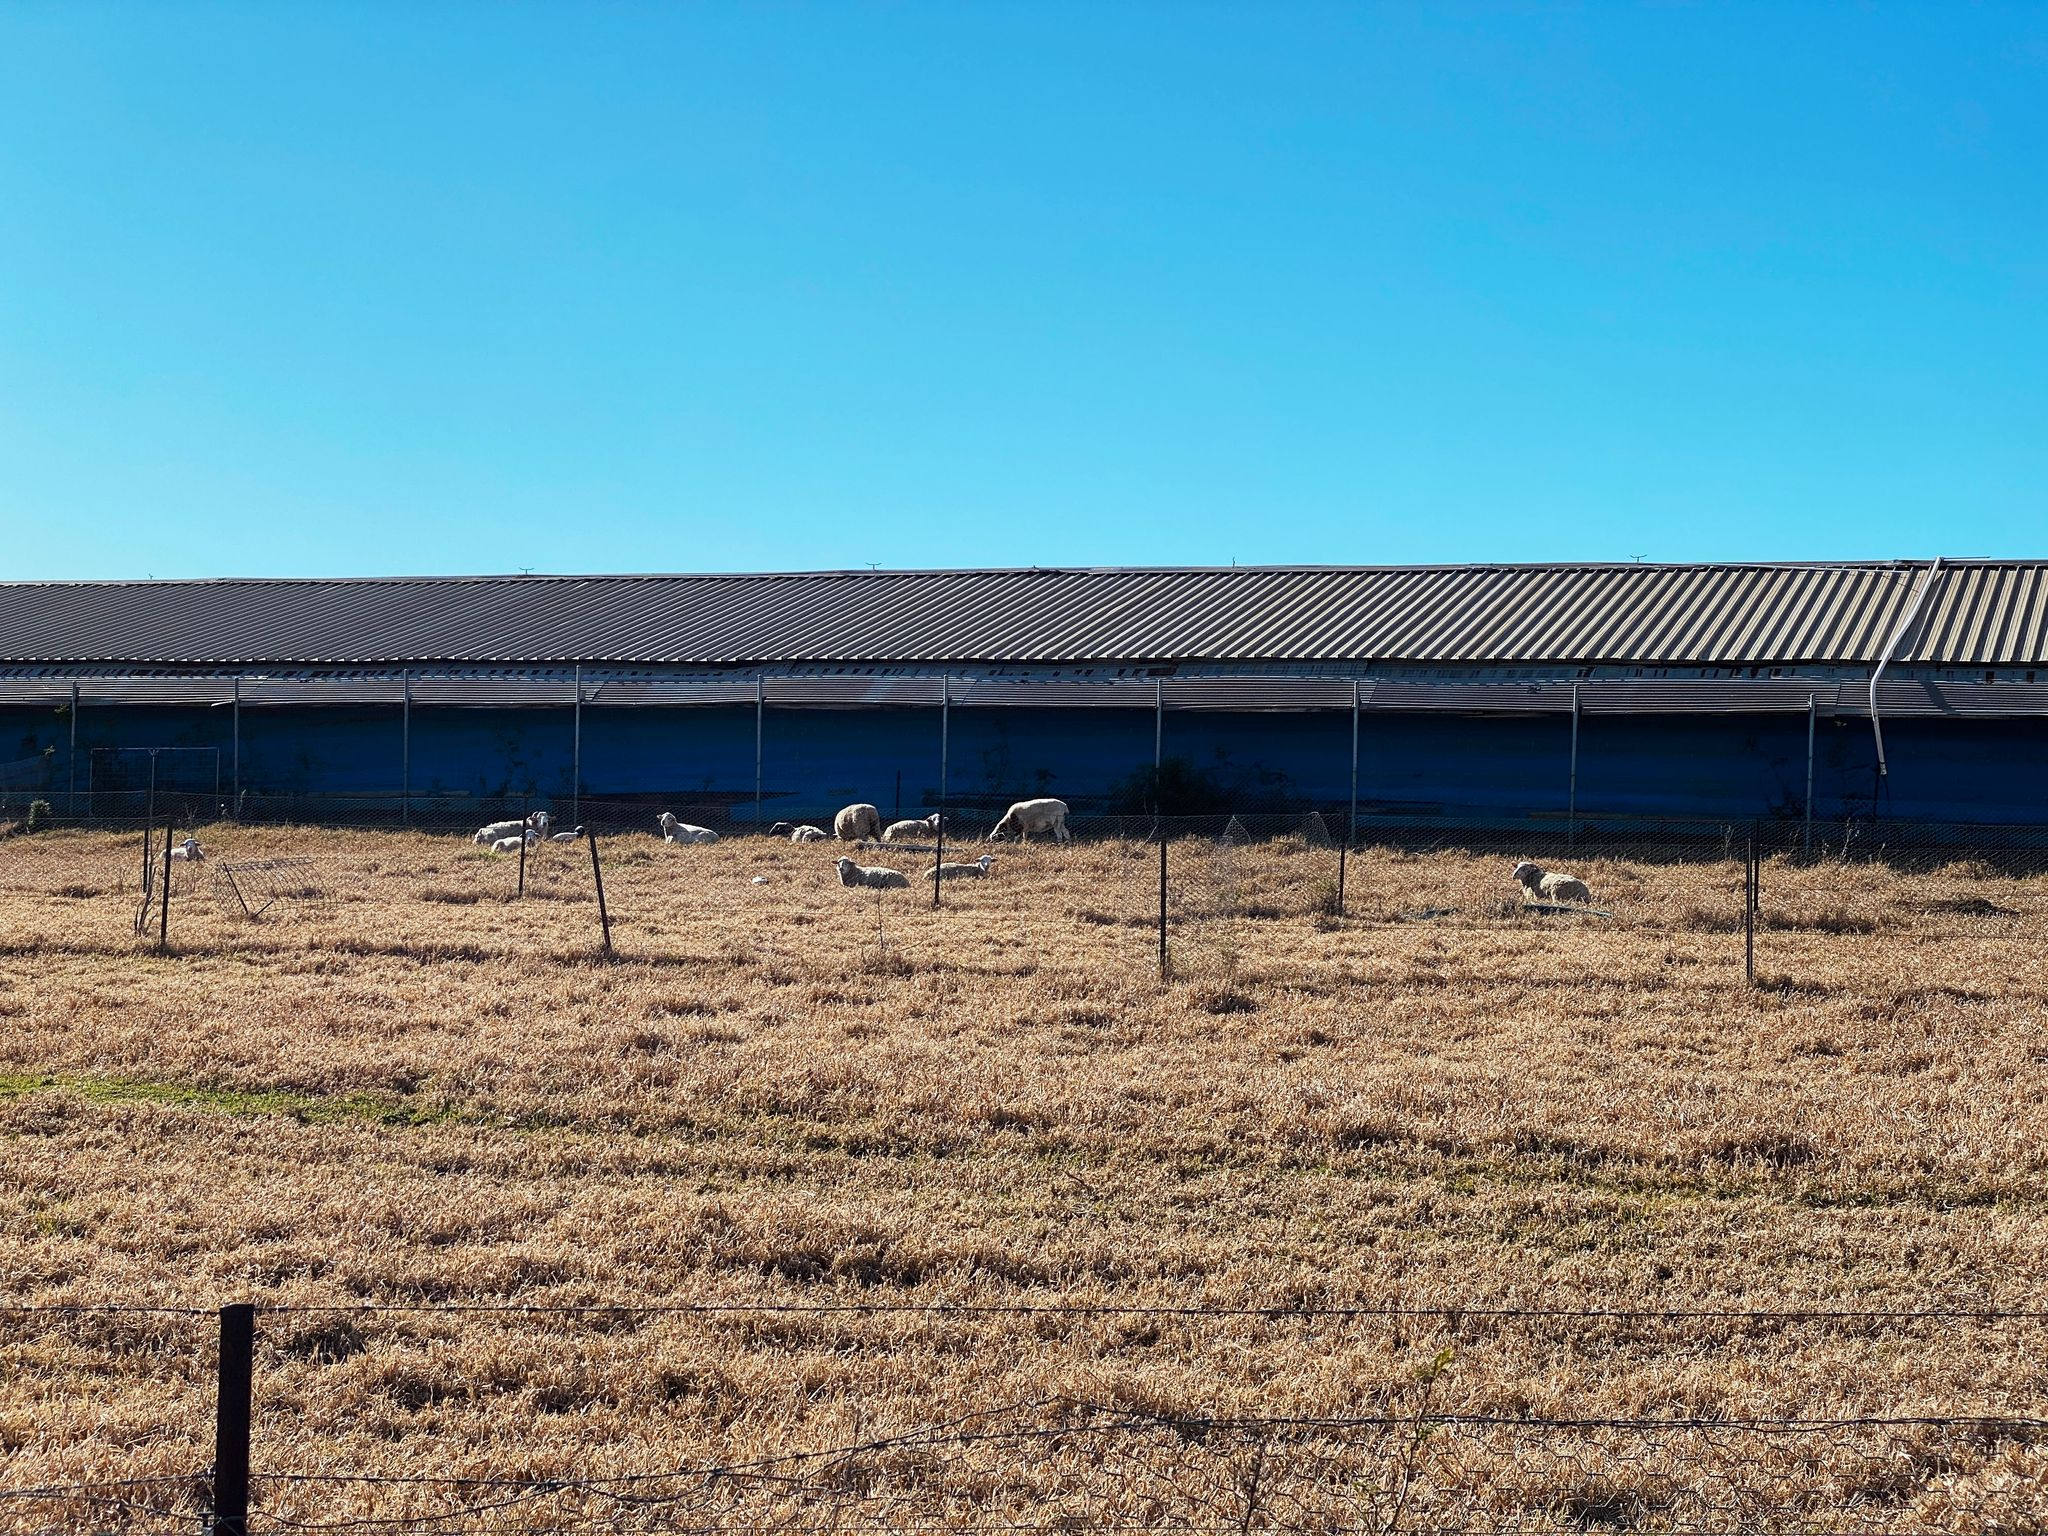 A photo of some distant sheep standing or lying in a very brown field of grass, in front of a long shed-looking structure that has a corrugated metal roof.